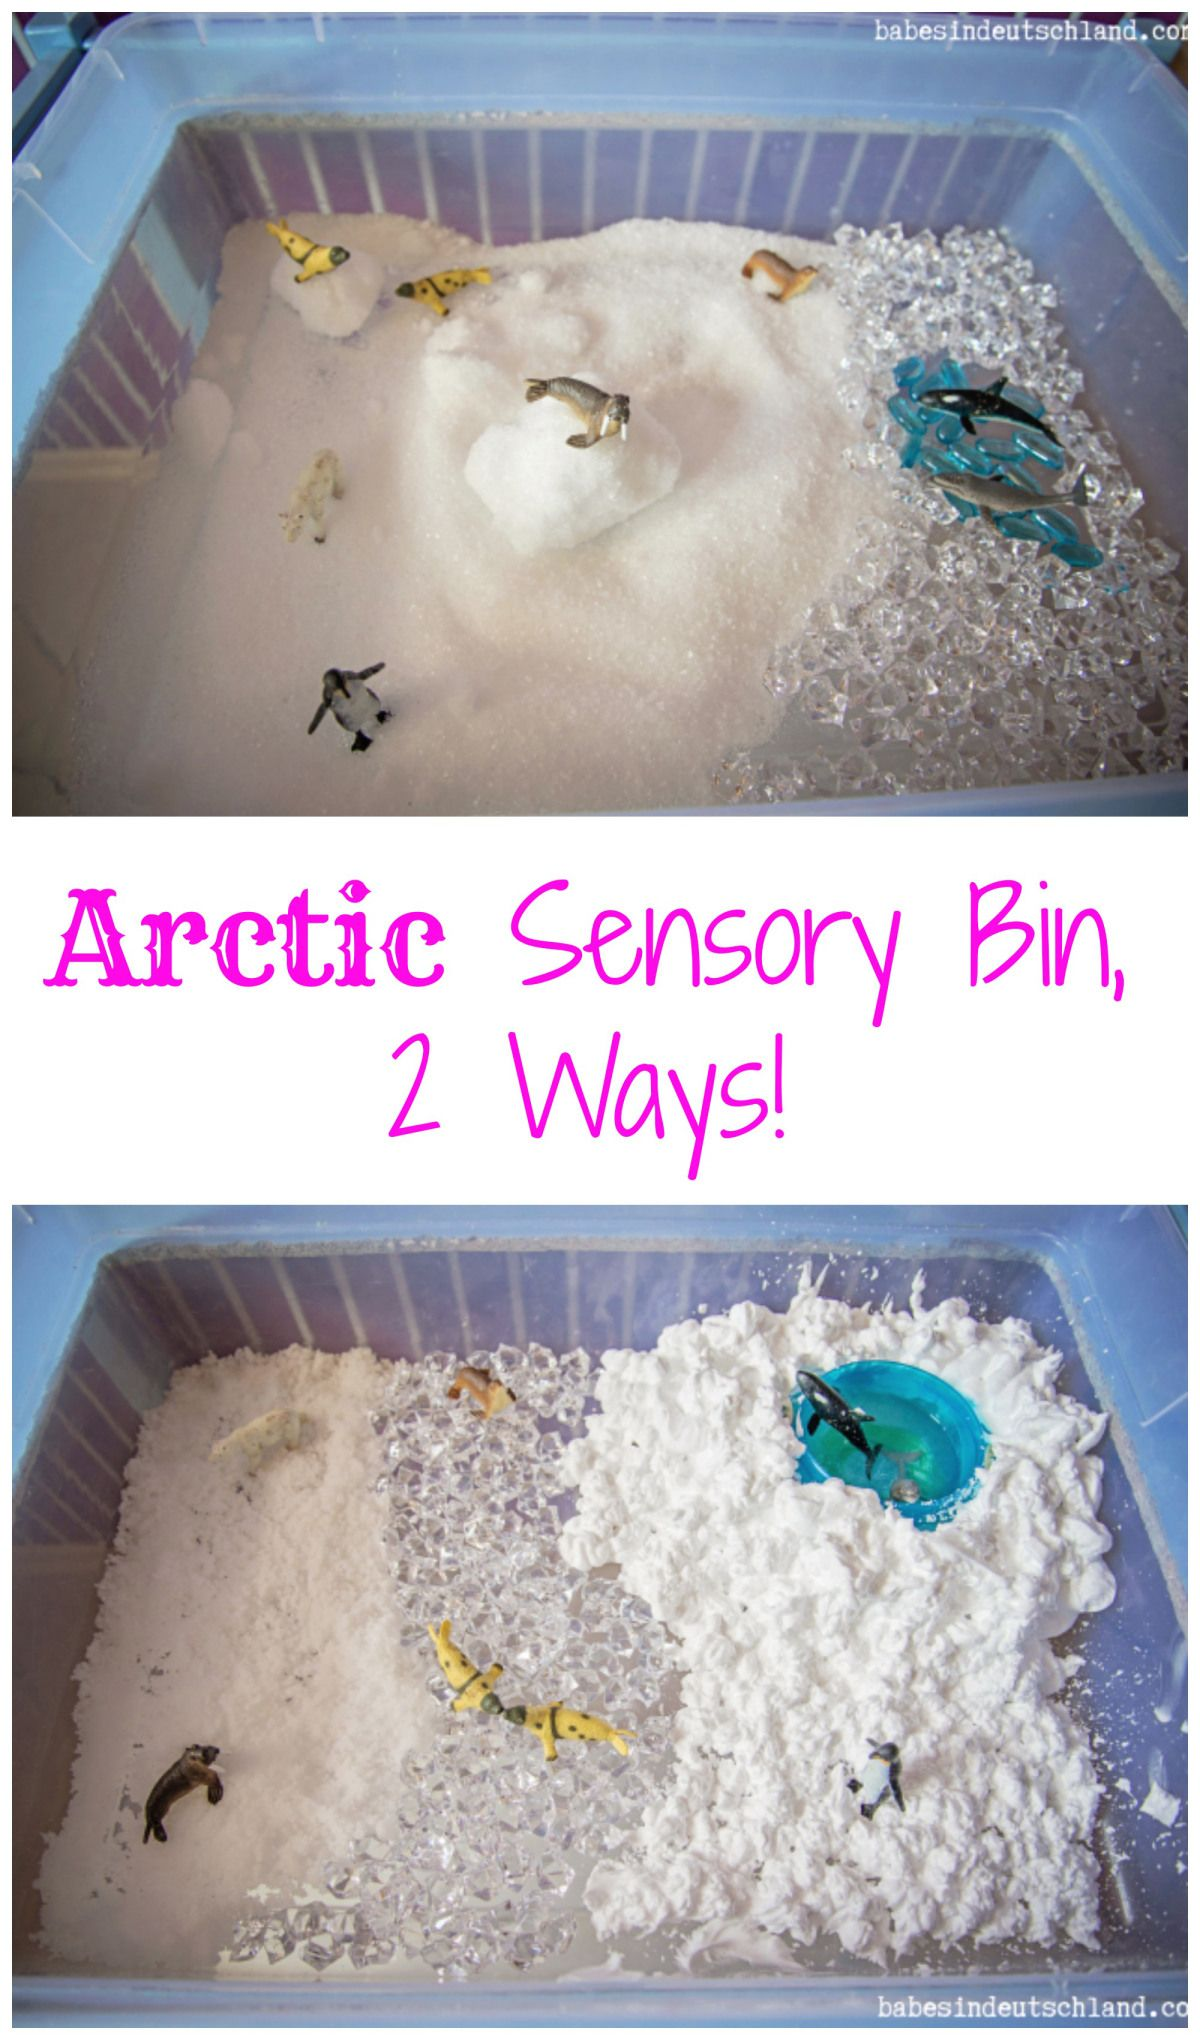 An Arctic Sensory Bin Done Two Ways The Messy Way And The Clean Er Way